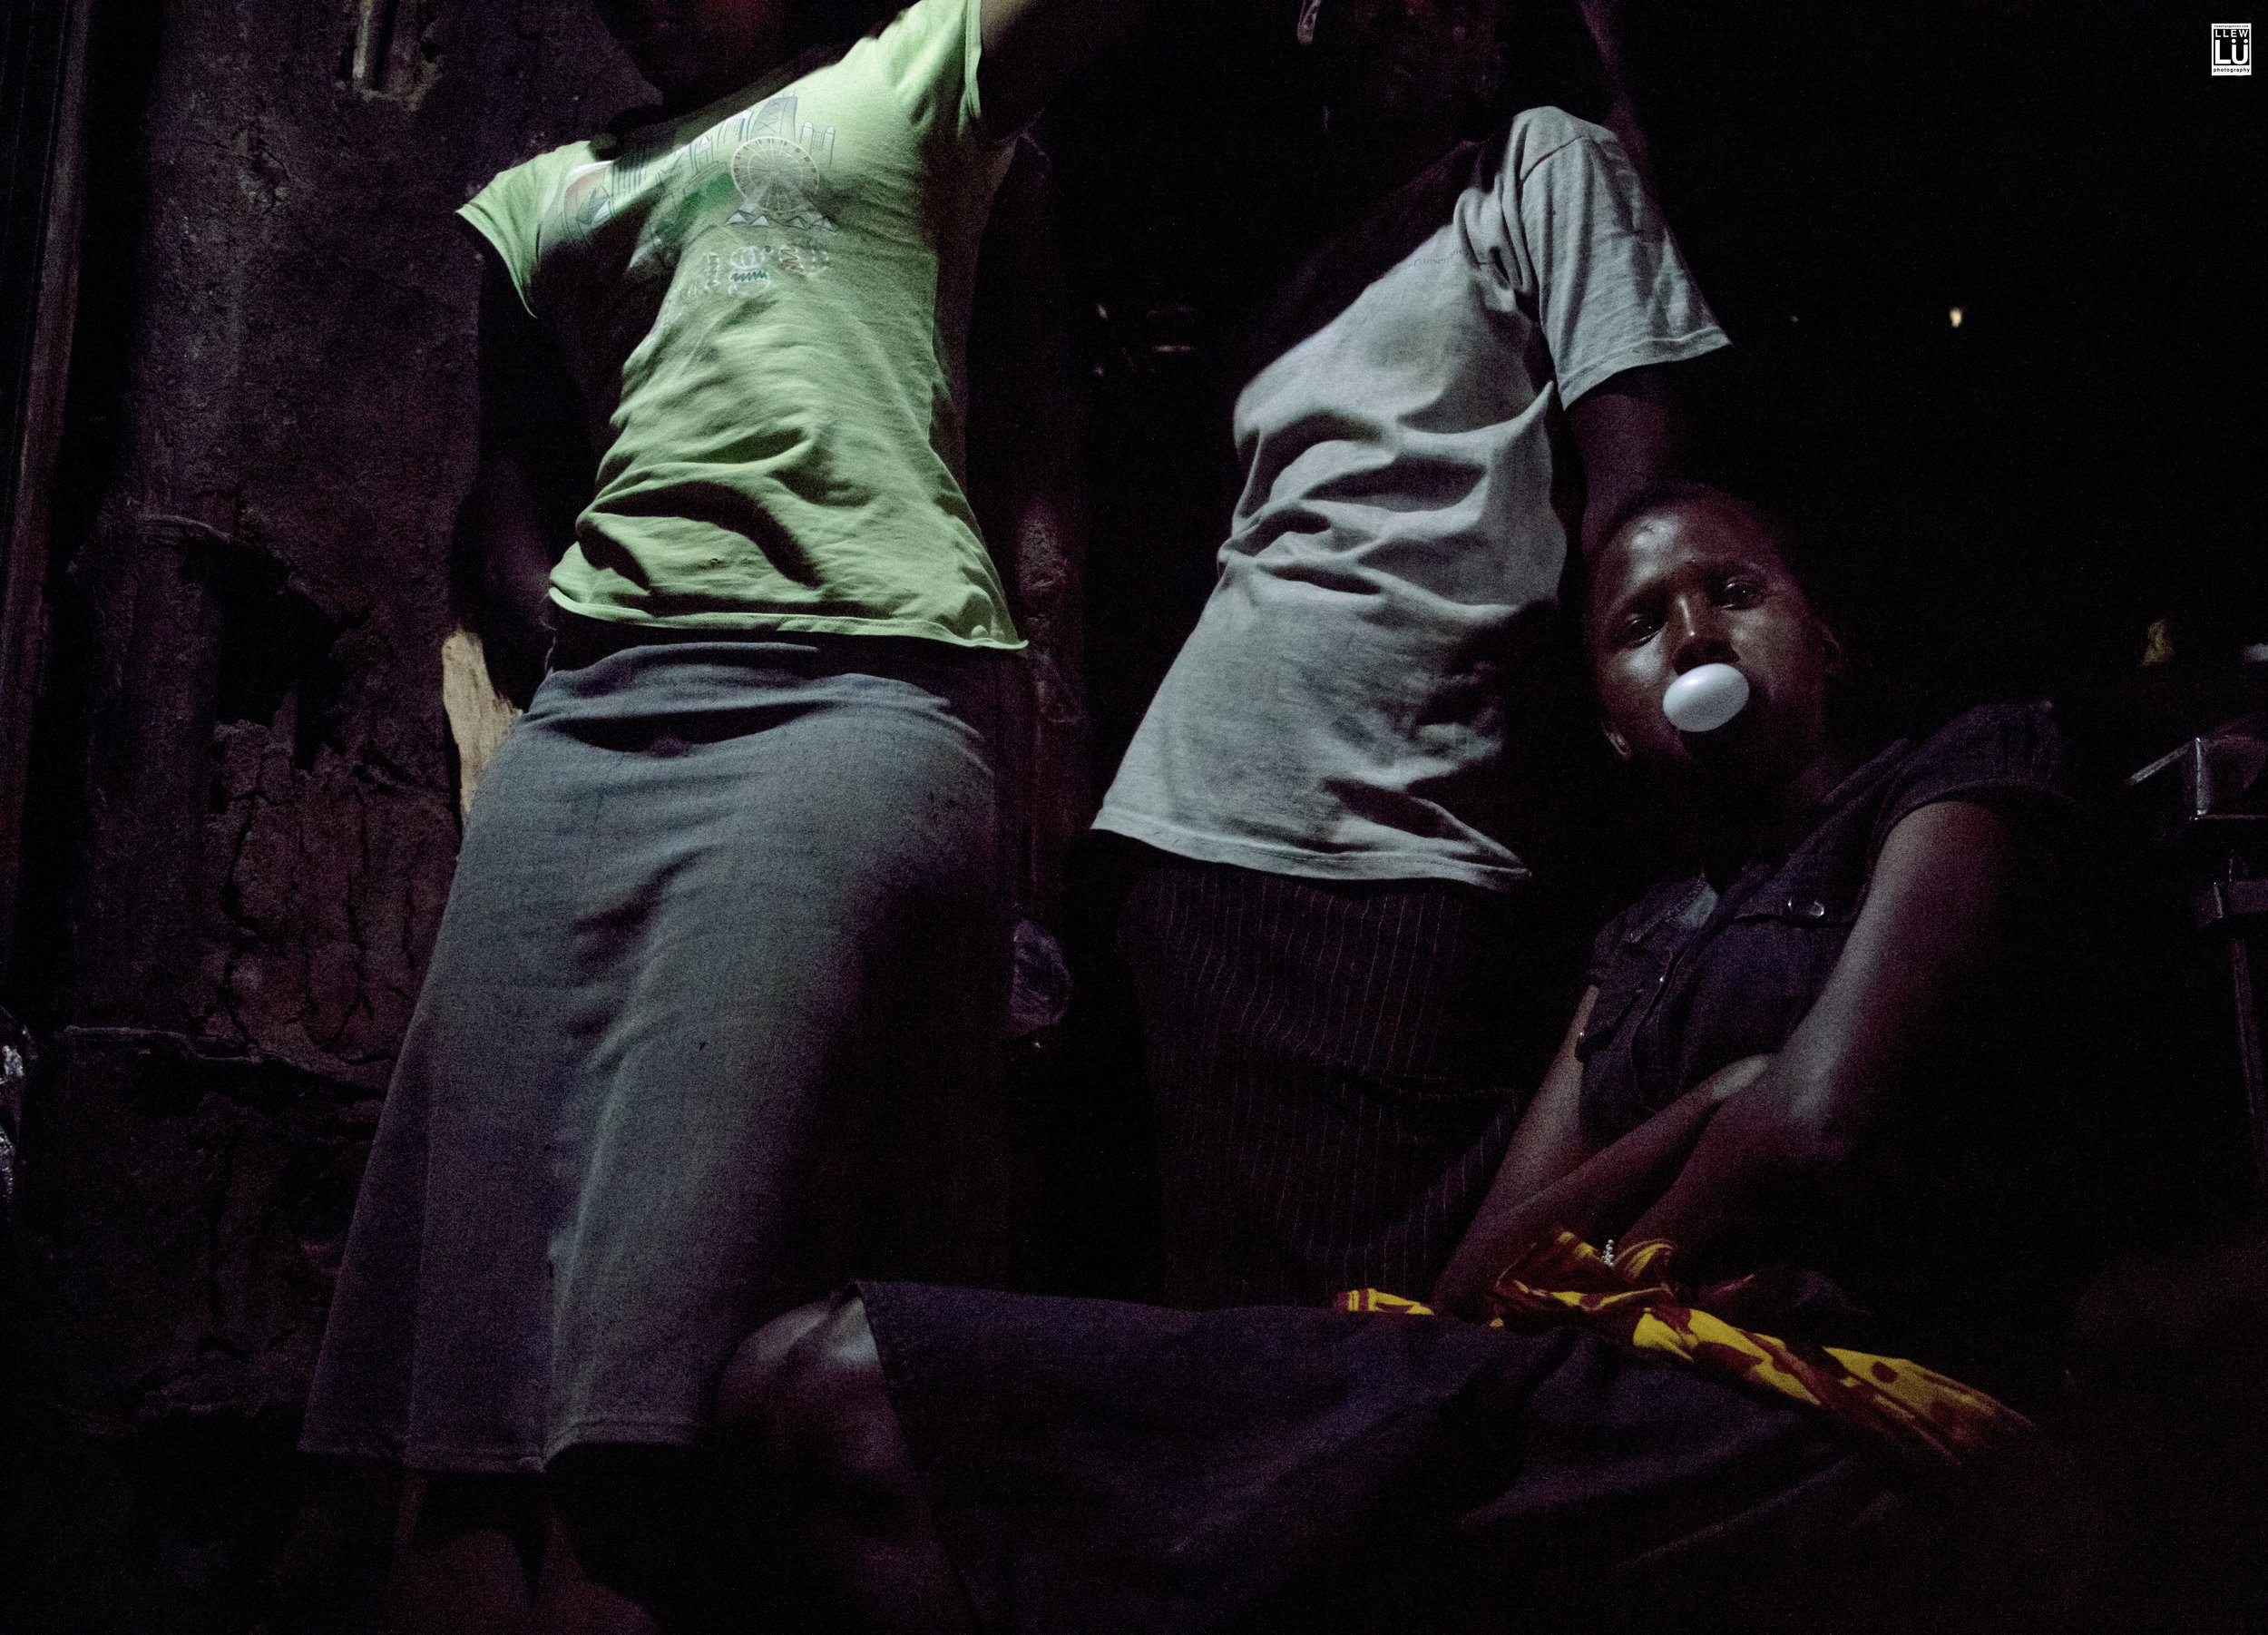 I was invited in to hang out with some young ladies. The inside of an Enkai is really small, warm and dark. It smells strongly of wood burning from the small stove that vents through the only small hole that natural light flows through.